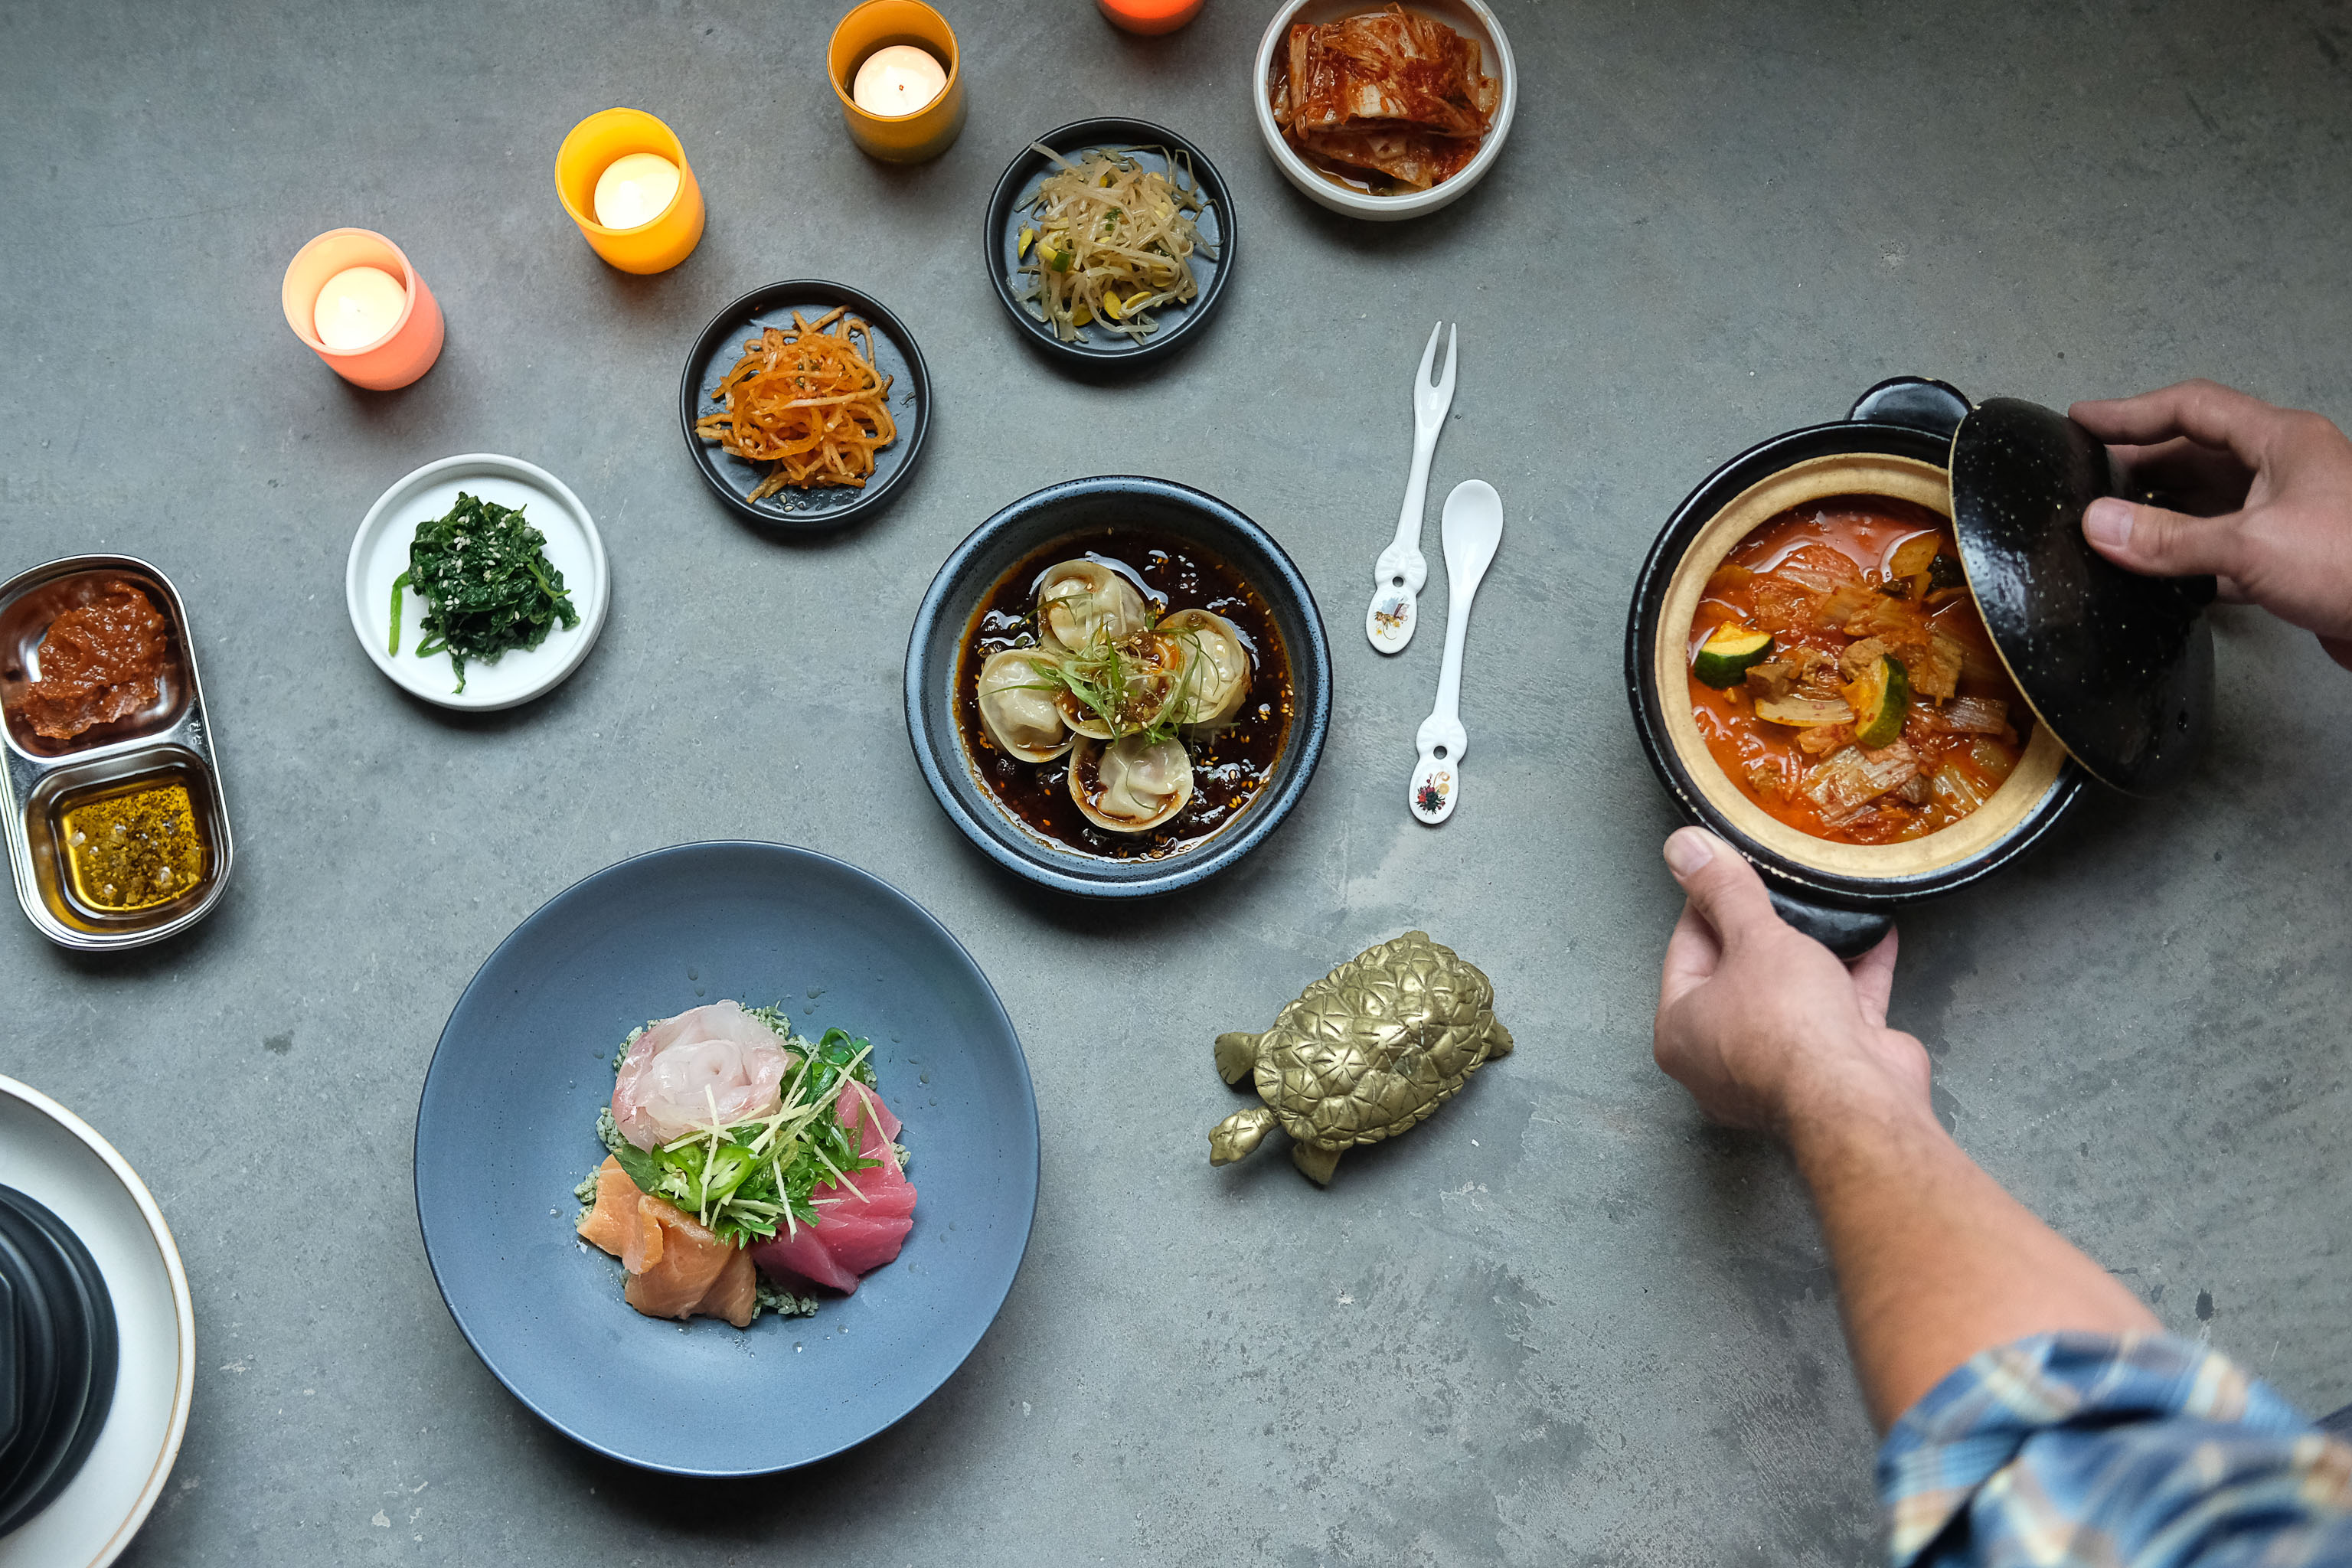 New Korean Restaurant With Barbecue and Banchan Opens in East Austin